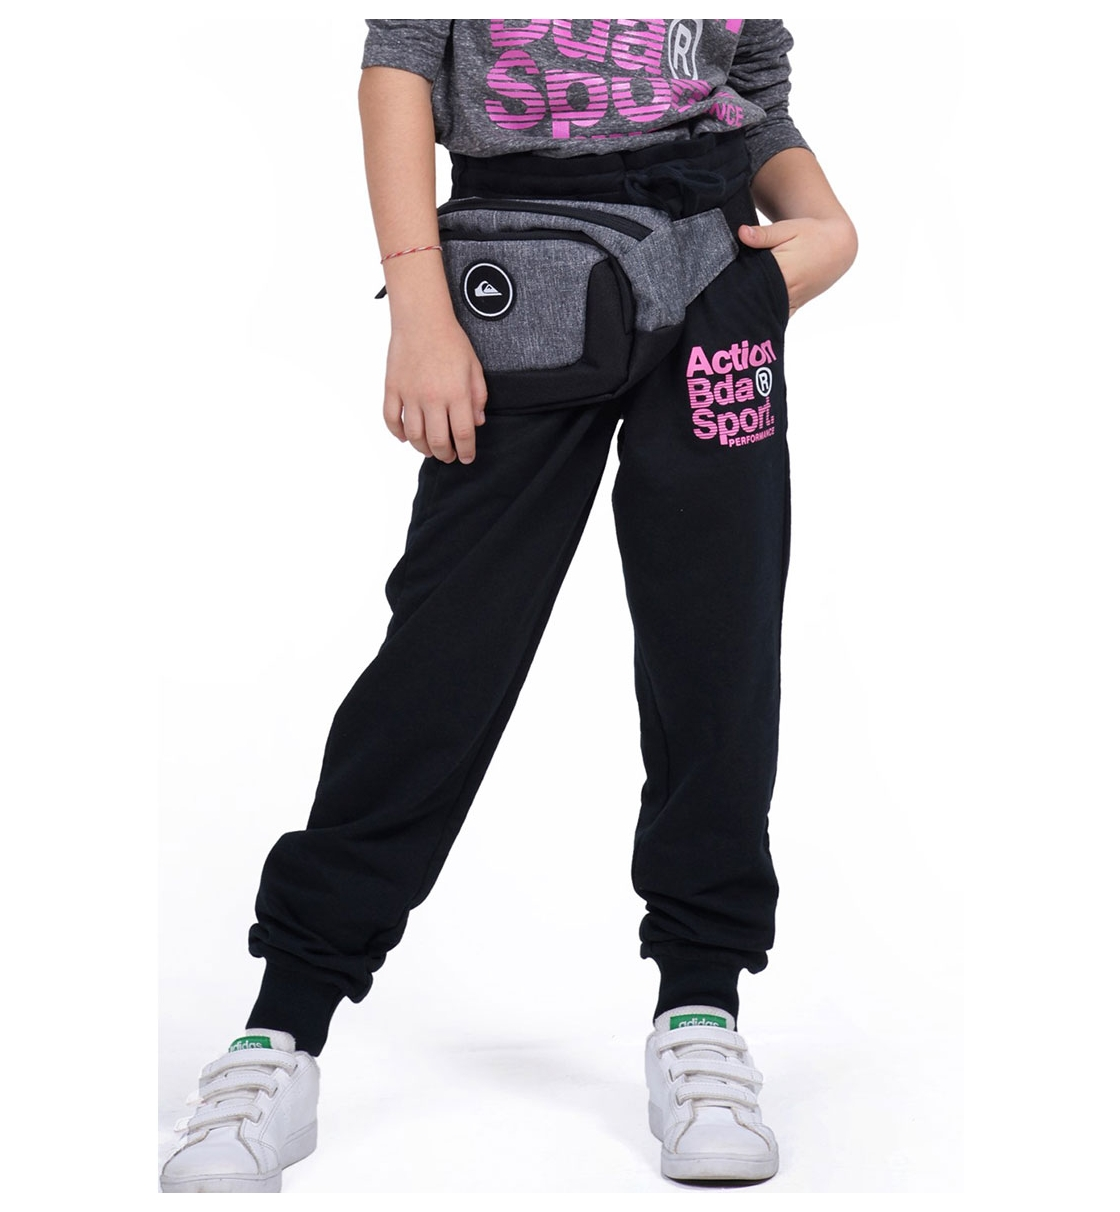 Body Action Παιδικό Αθλητικό Παντελόνι Fw19 Girls Basic Pants 022902